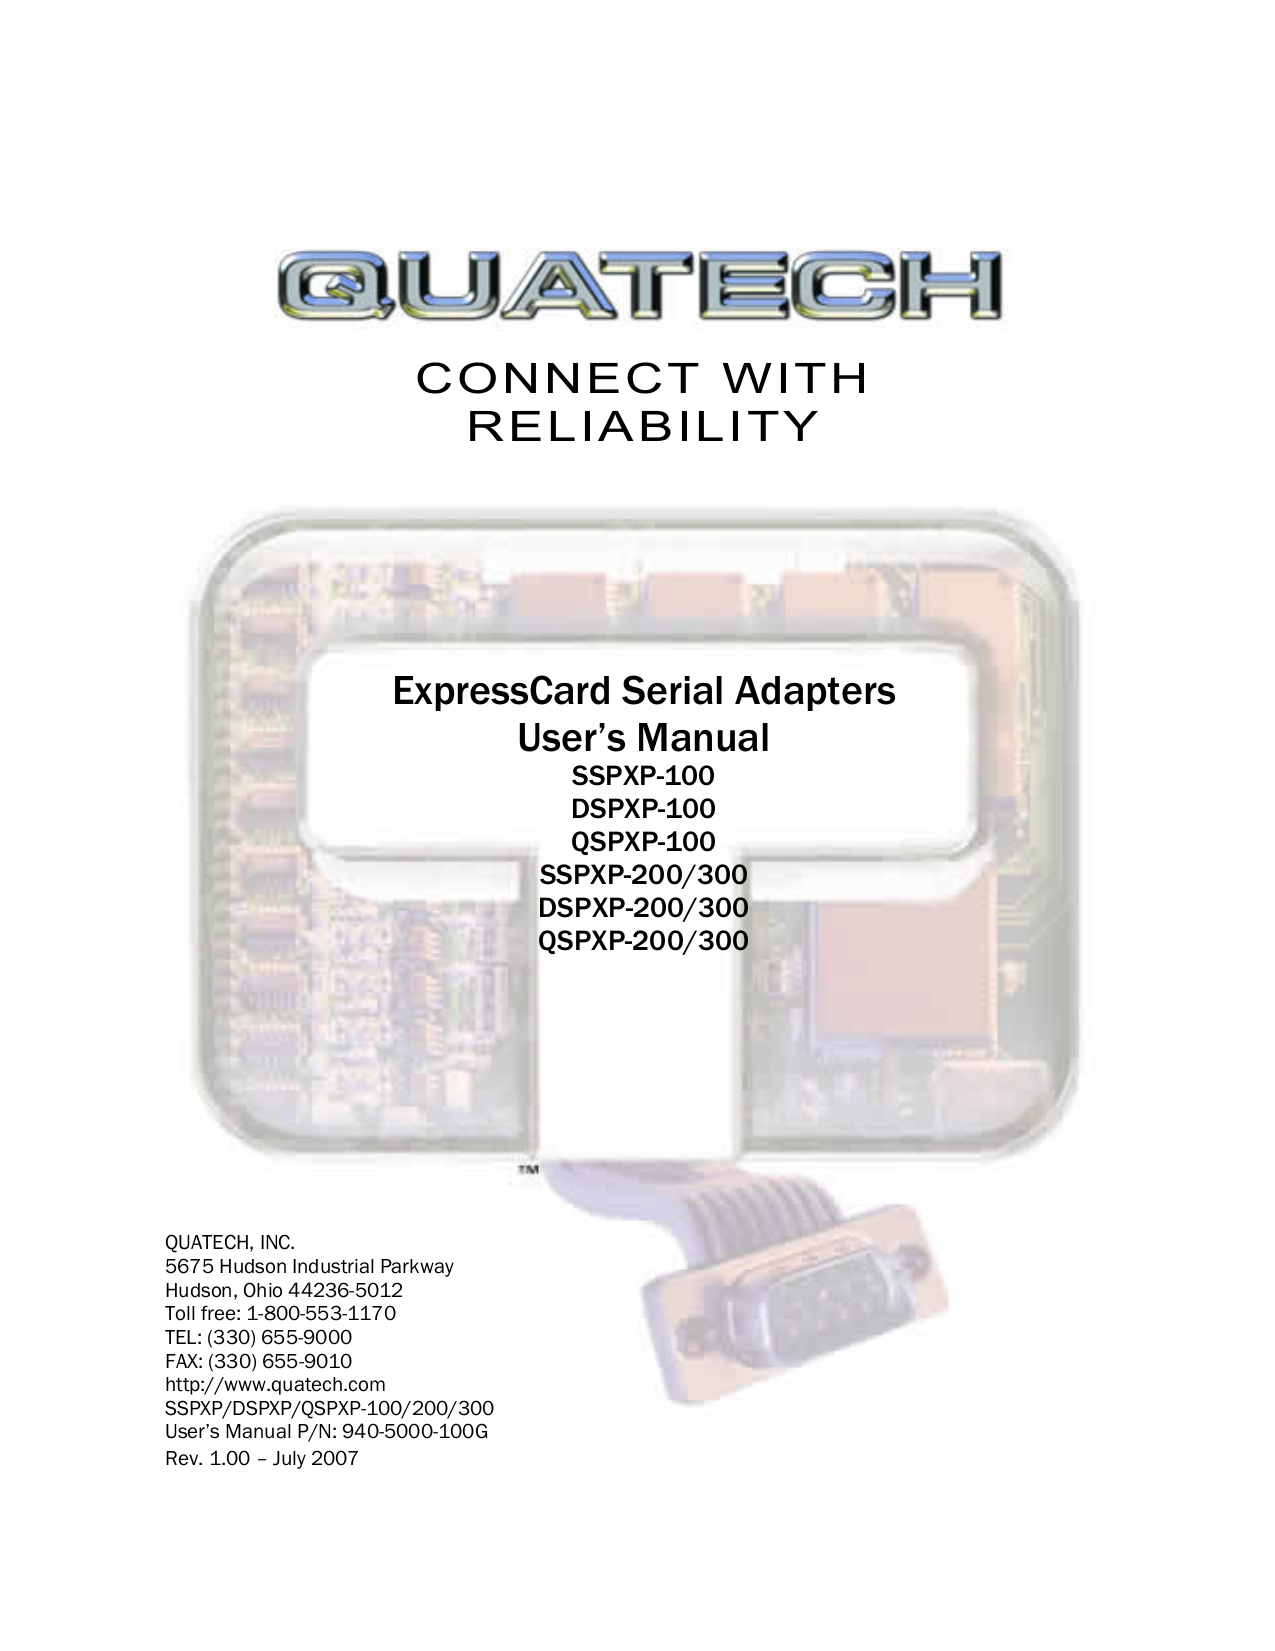 pdf for Quatech Other SSPXP-300 PCI Express Devices manual